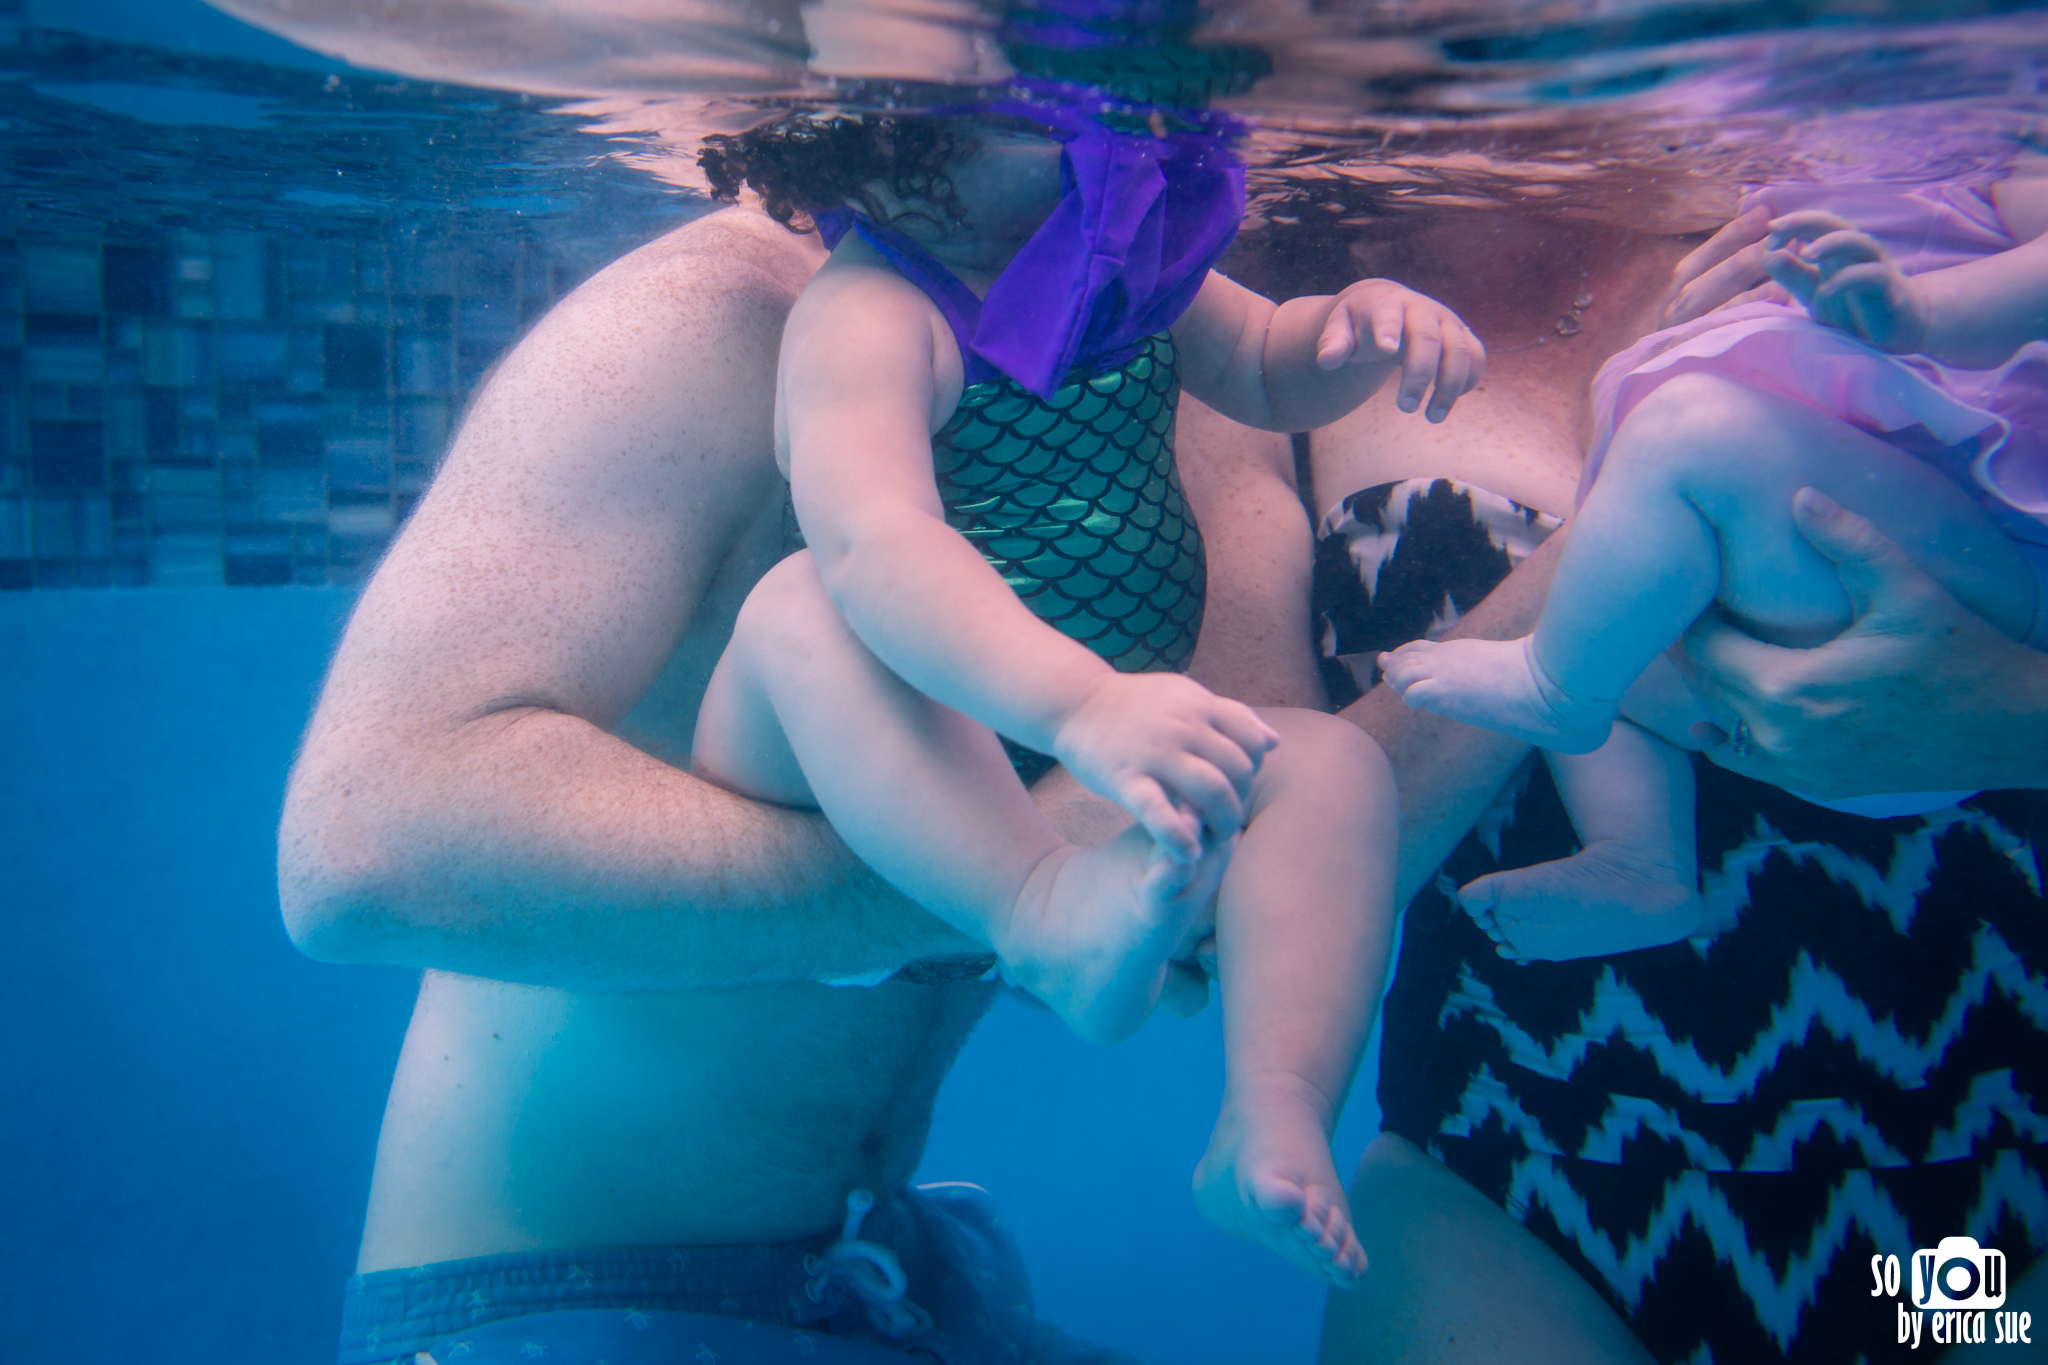 underwater-swim-family-photography-ft-lauderdale-so-you-by-erica-sue-1678.jpg